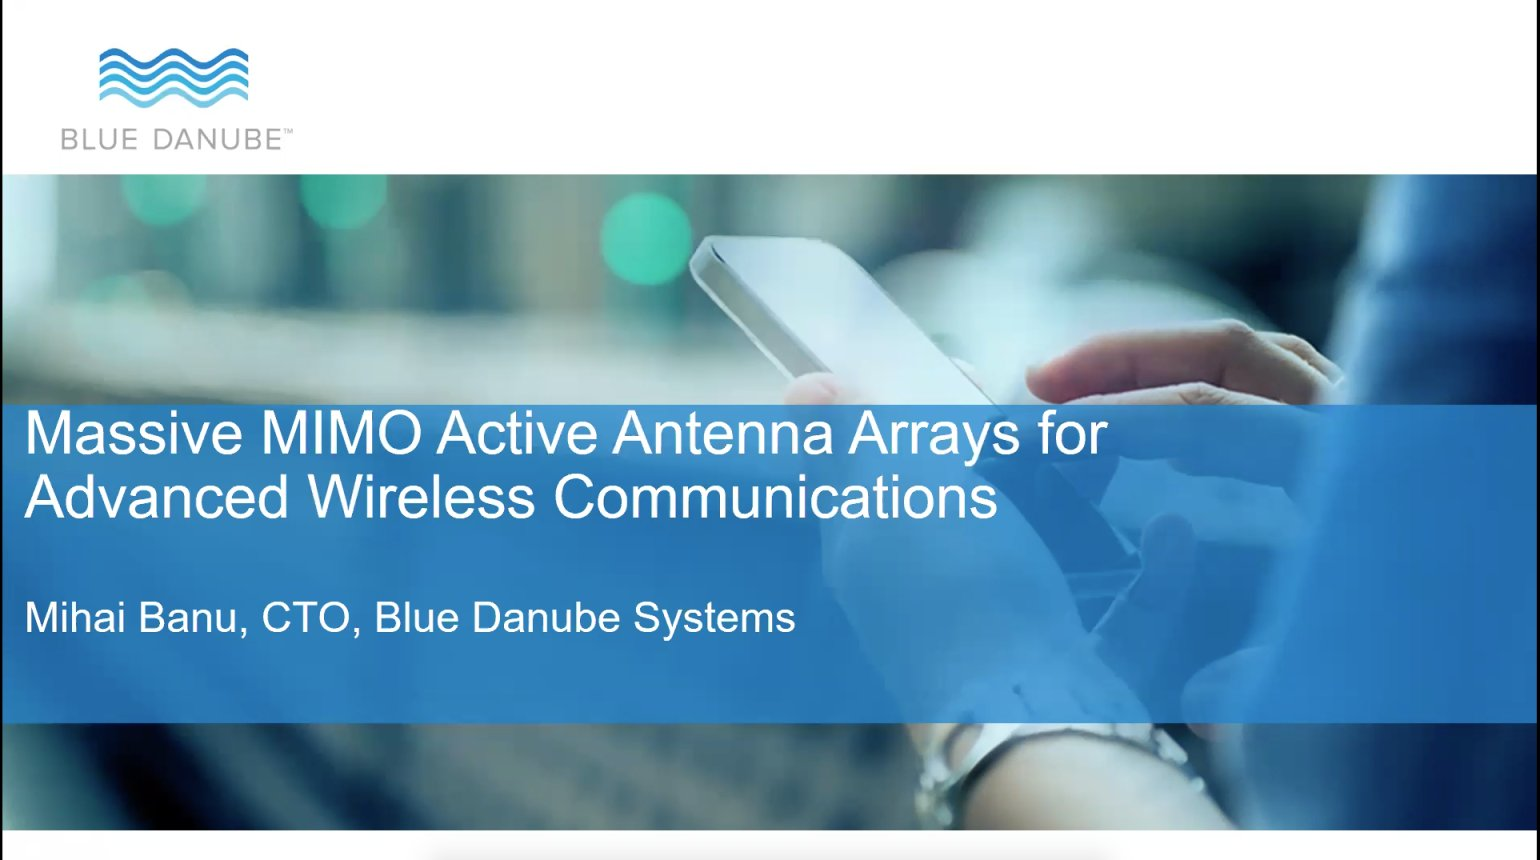 Massive MIMO Active Antenna Arrays for Advanced Wireless Communications: IEEE CAS lecture by Dr. Mihai Banu